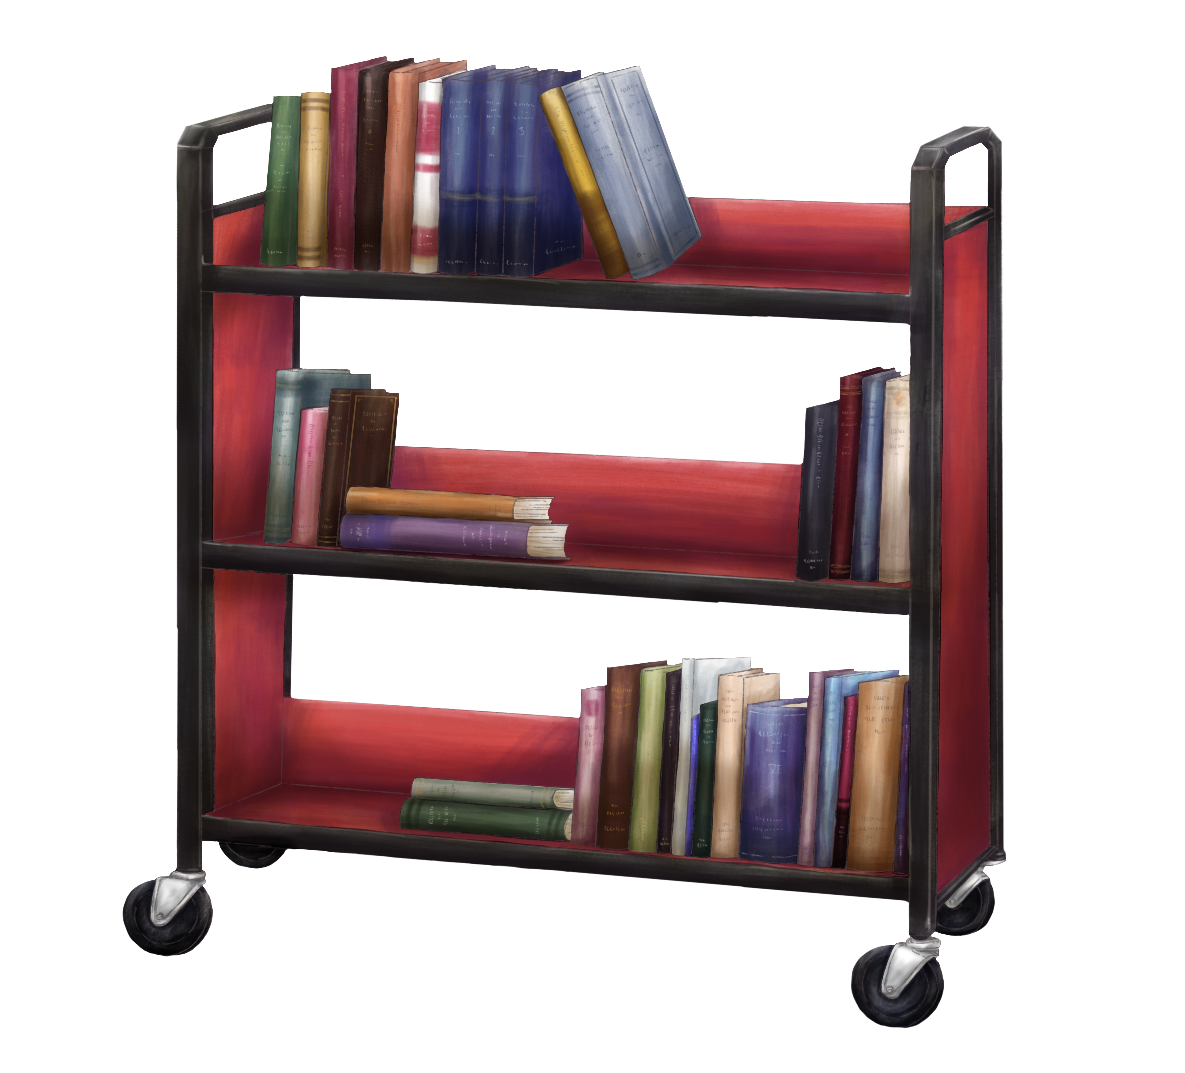 Colourful cart of books